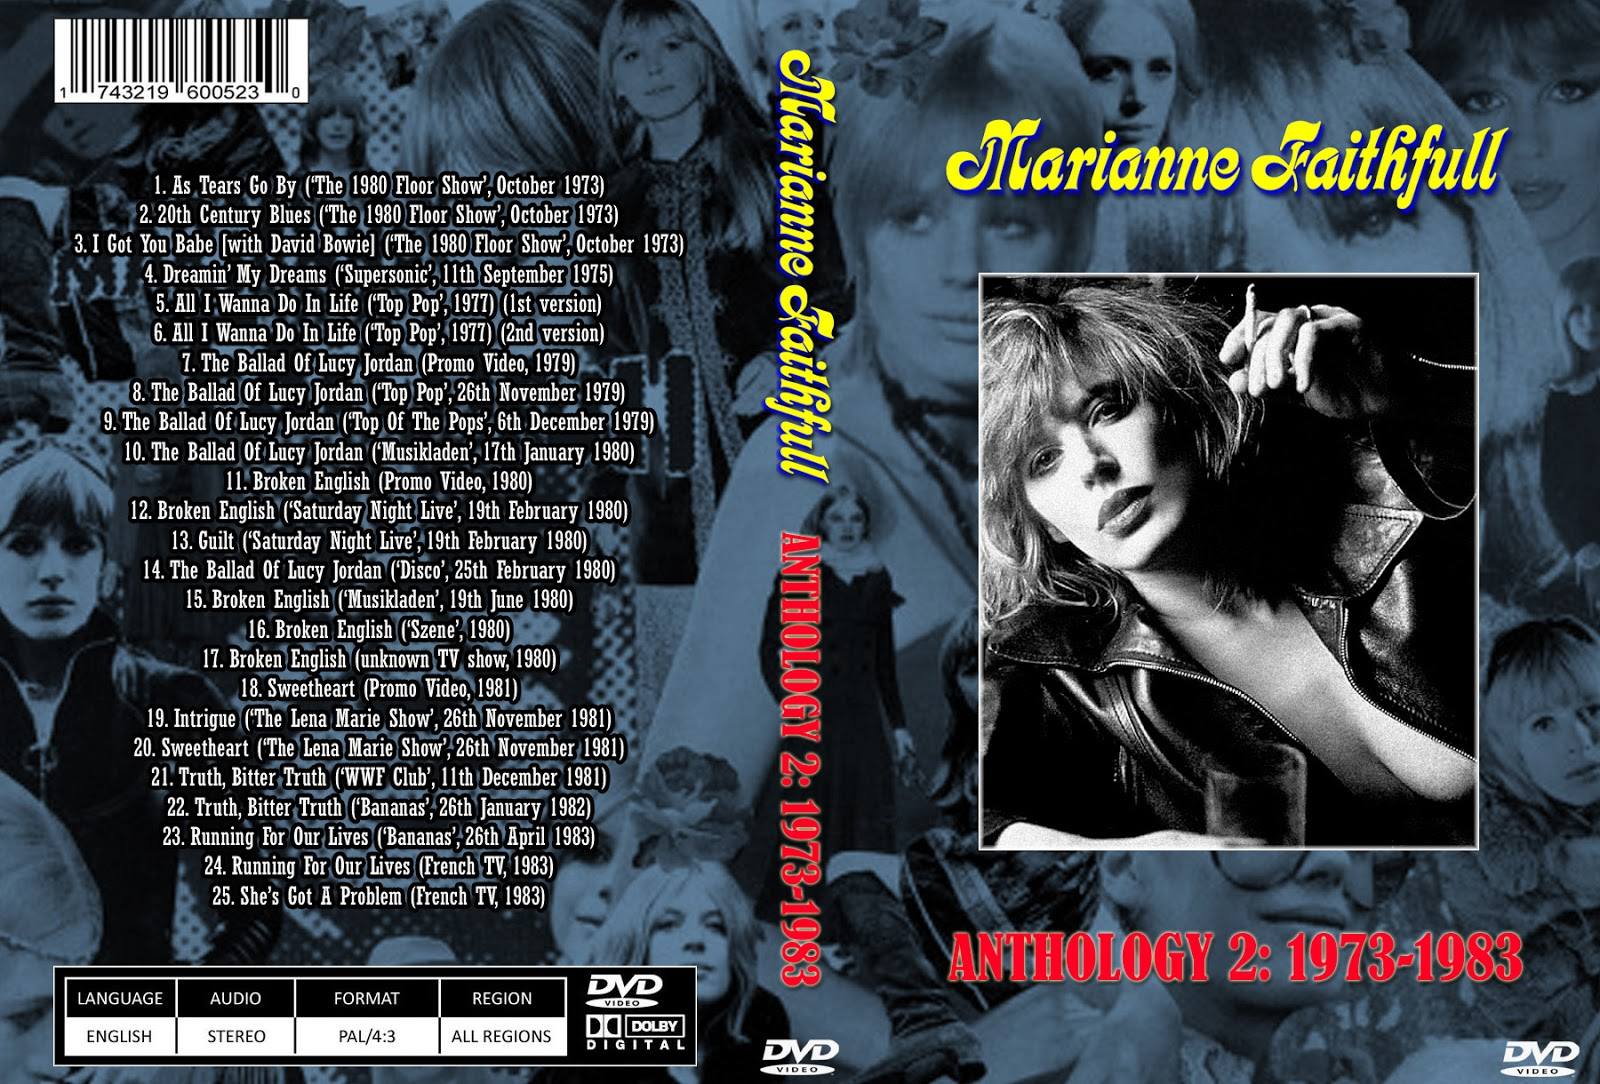 Music tv and video archives marianne faithfull on dvd wanted more marianne faithfull 1964 1983 era preferred altavistaventures